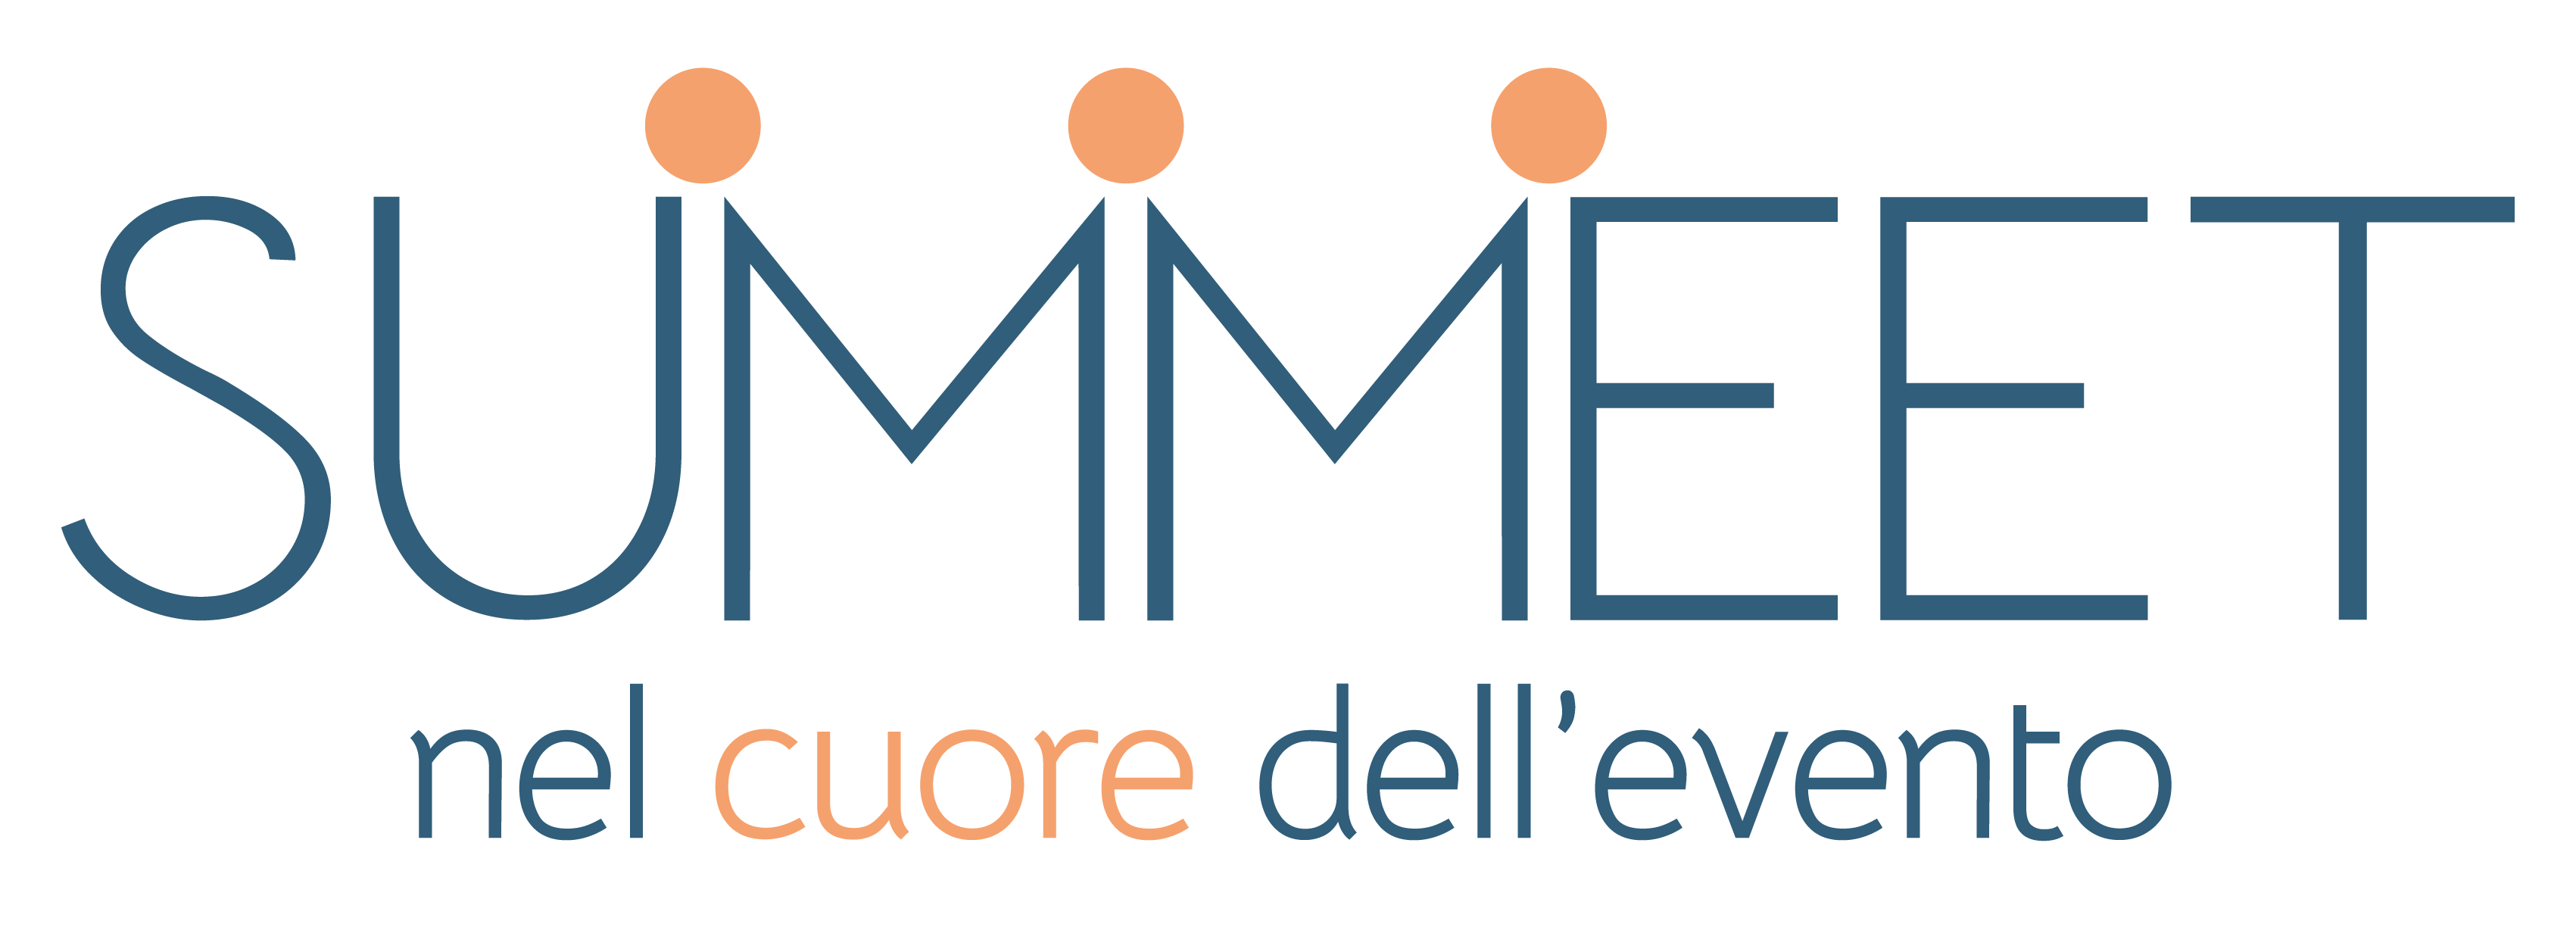 Immagine pay off con logo Summeet 2021